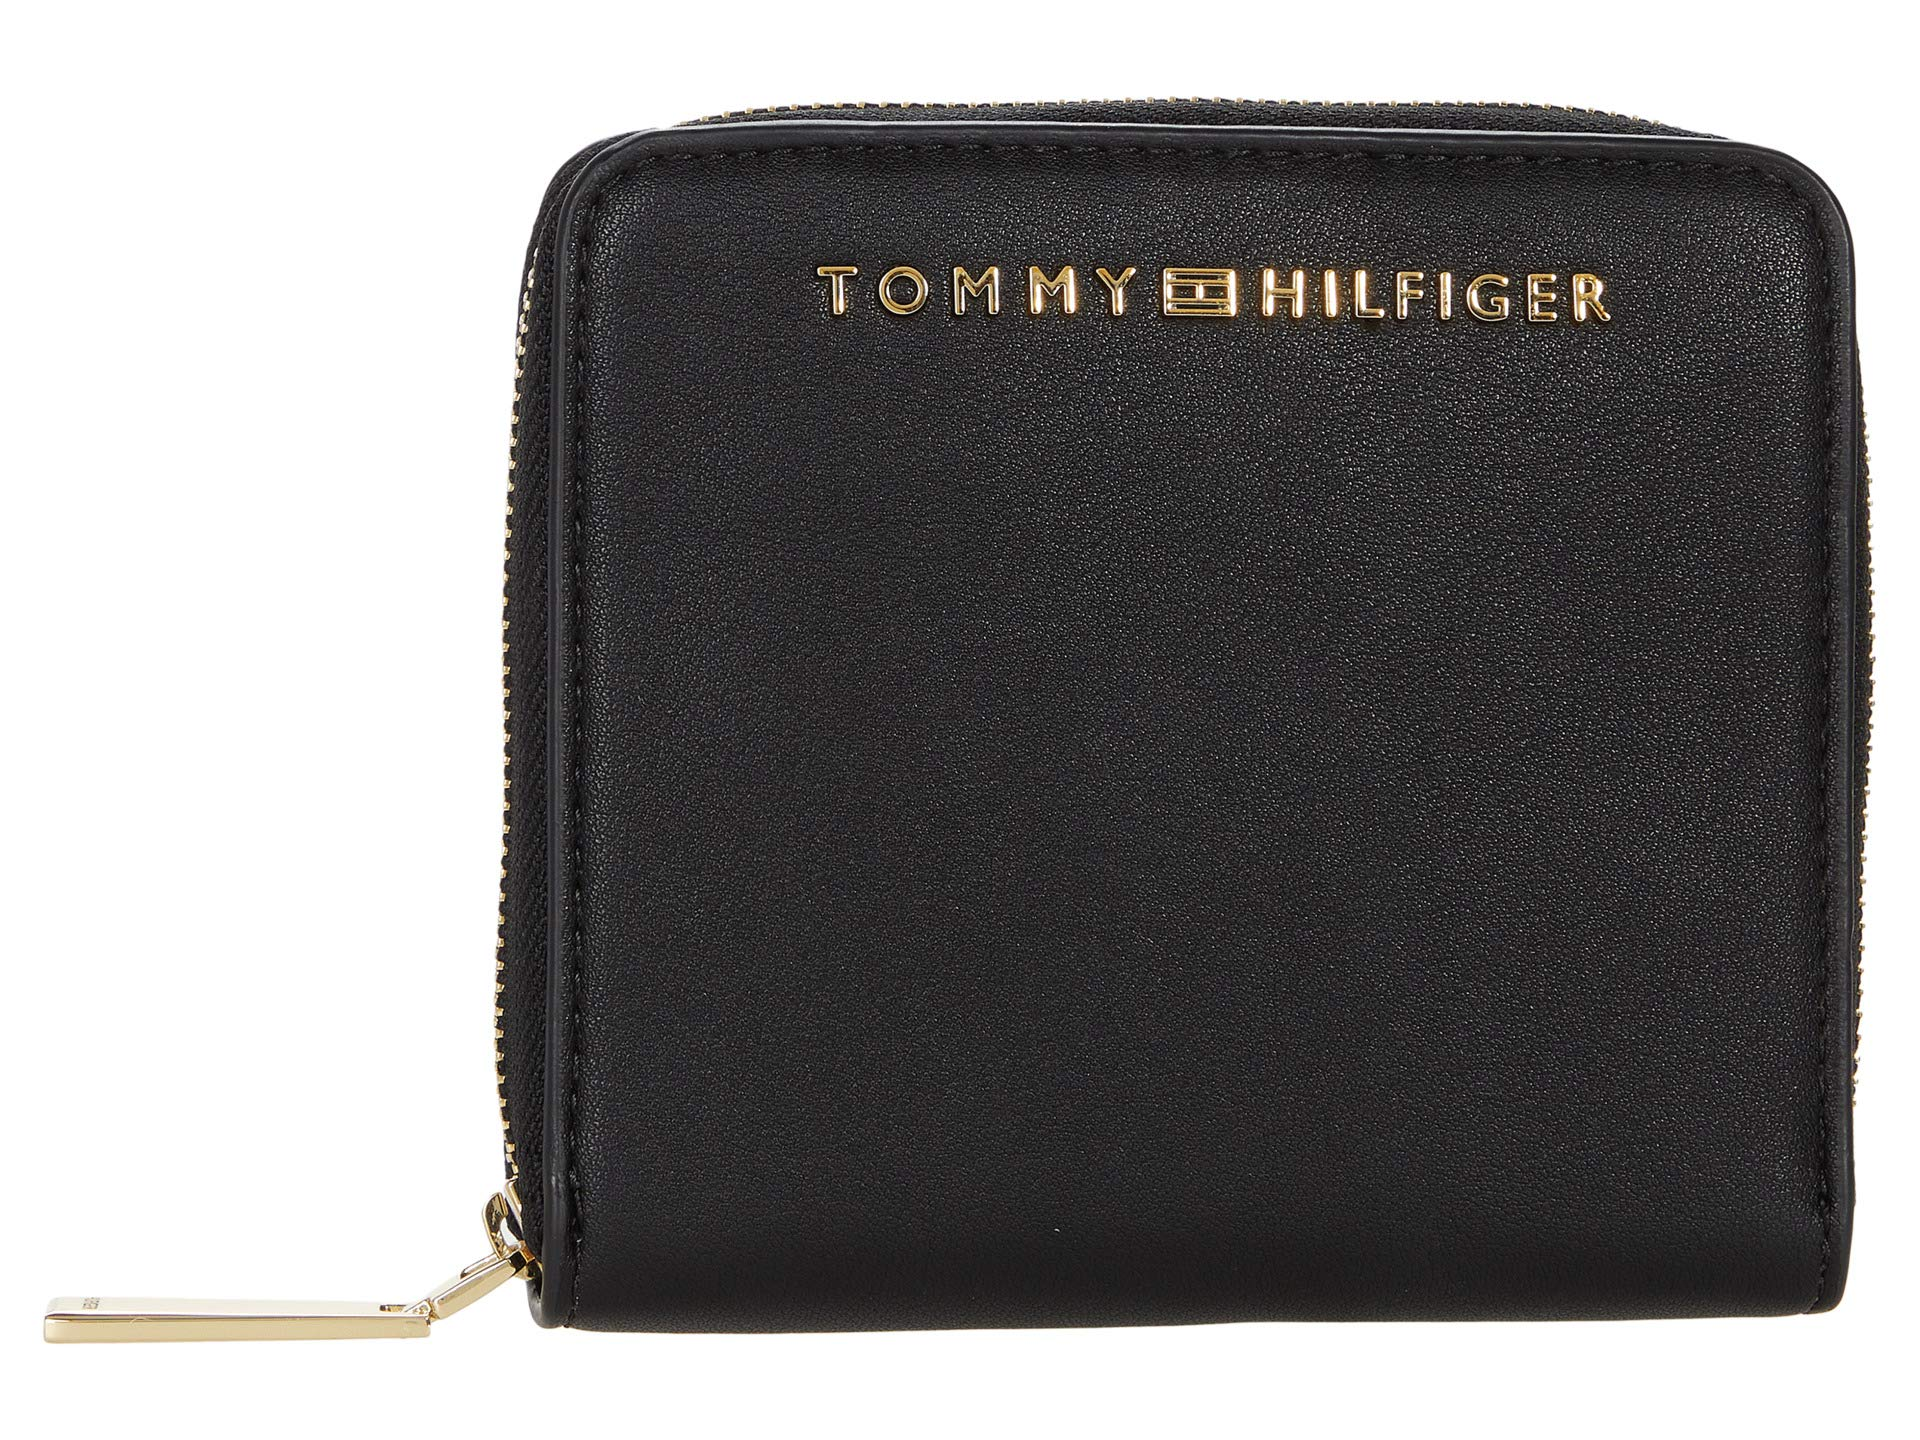 Tommy Hilfiger Tommy Hilfiger French Wallet - Smooth Grain PVC